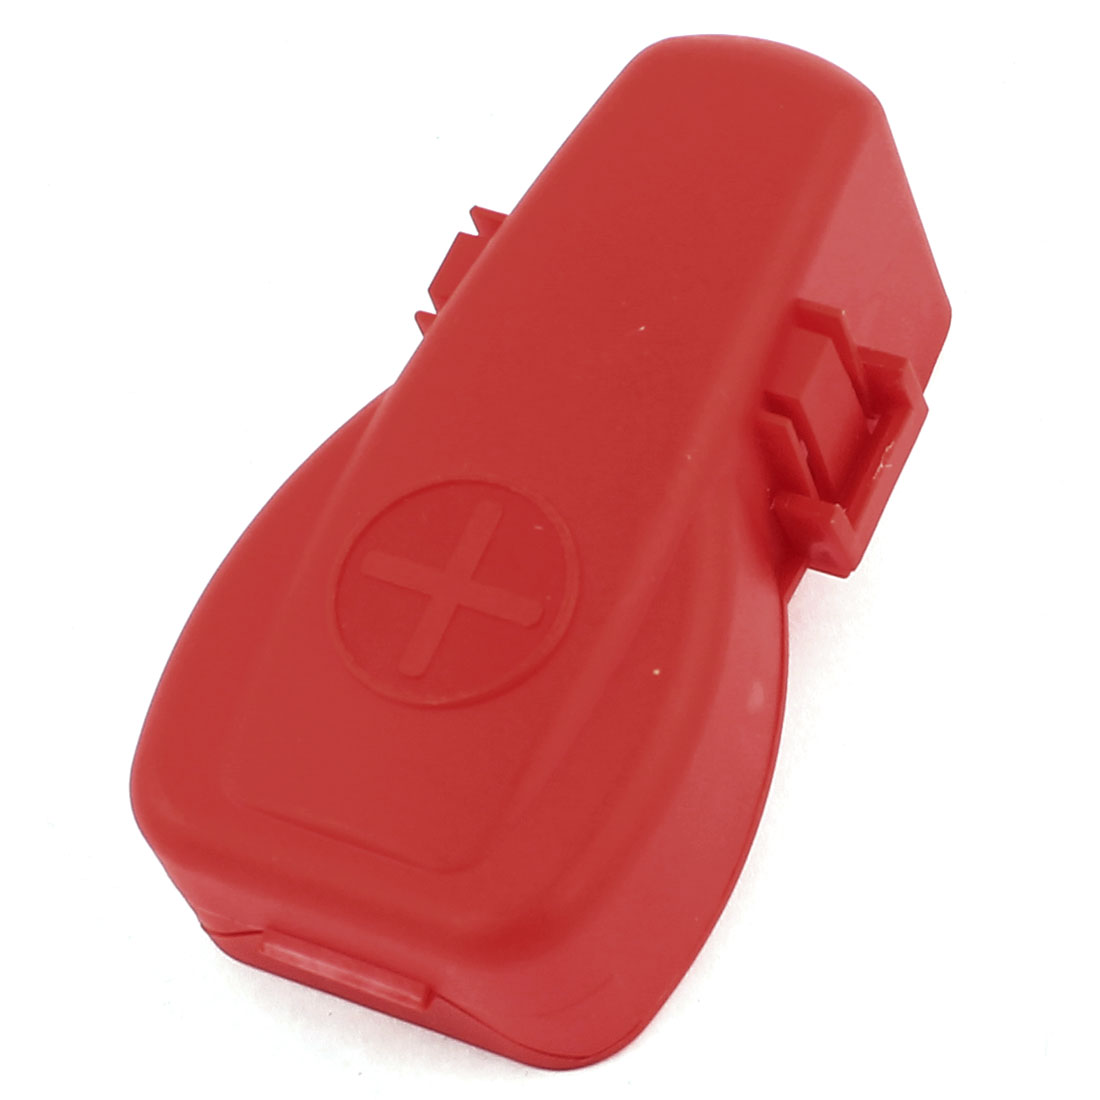 Car Cable Hard PVC Terminal Covers Protectors Red Boots Cap Cover